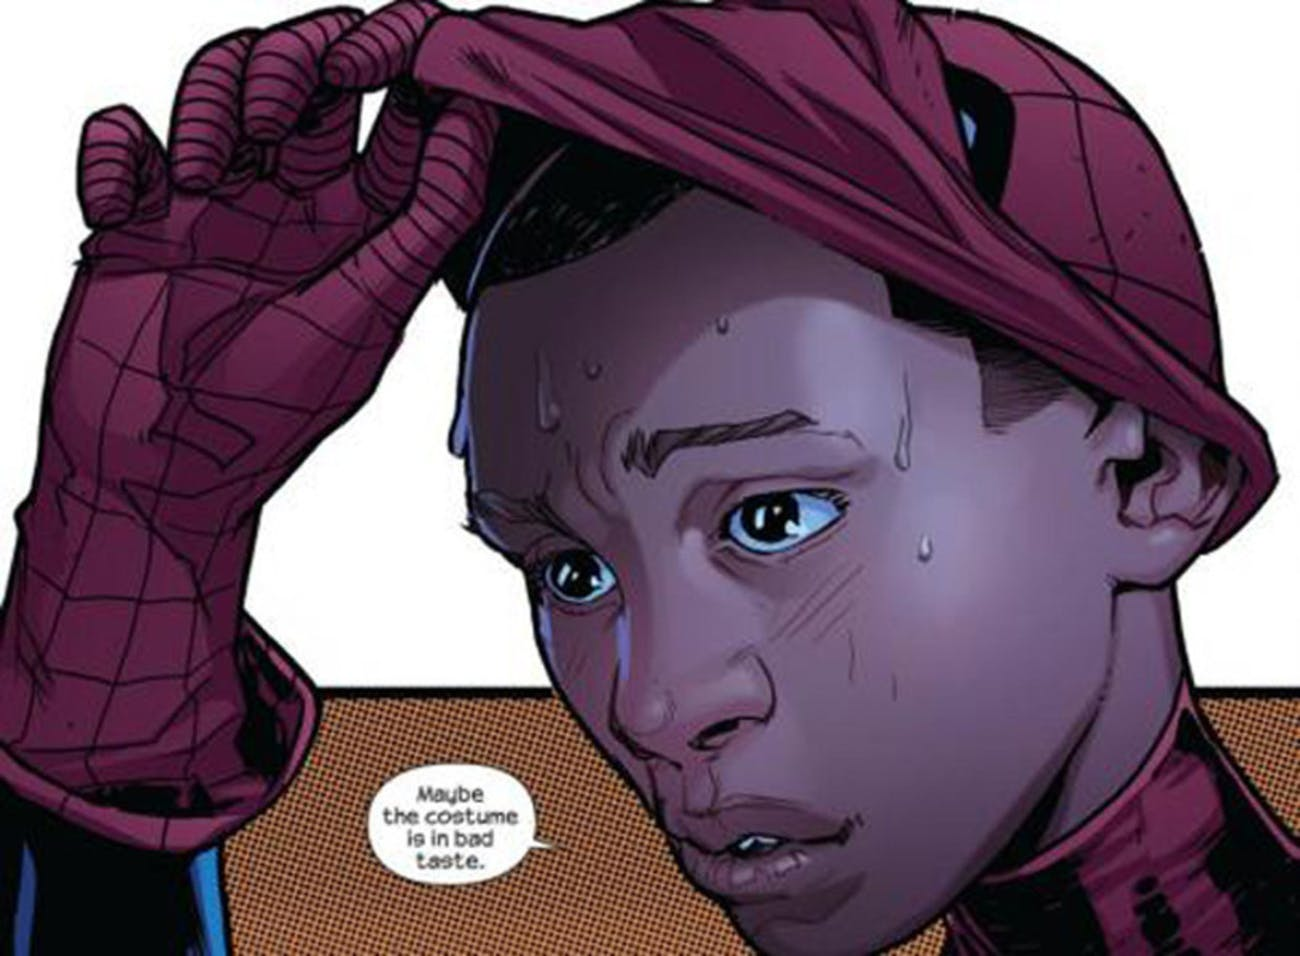 Spider-Verse' Oscars: Brian Michael Bendis Opens Up on Miles Morales